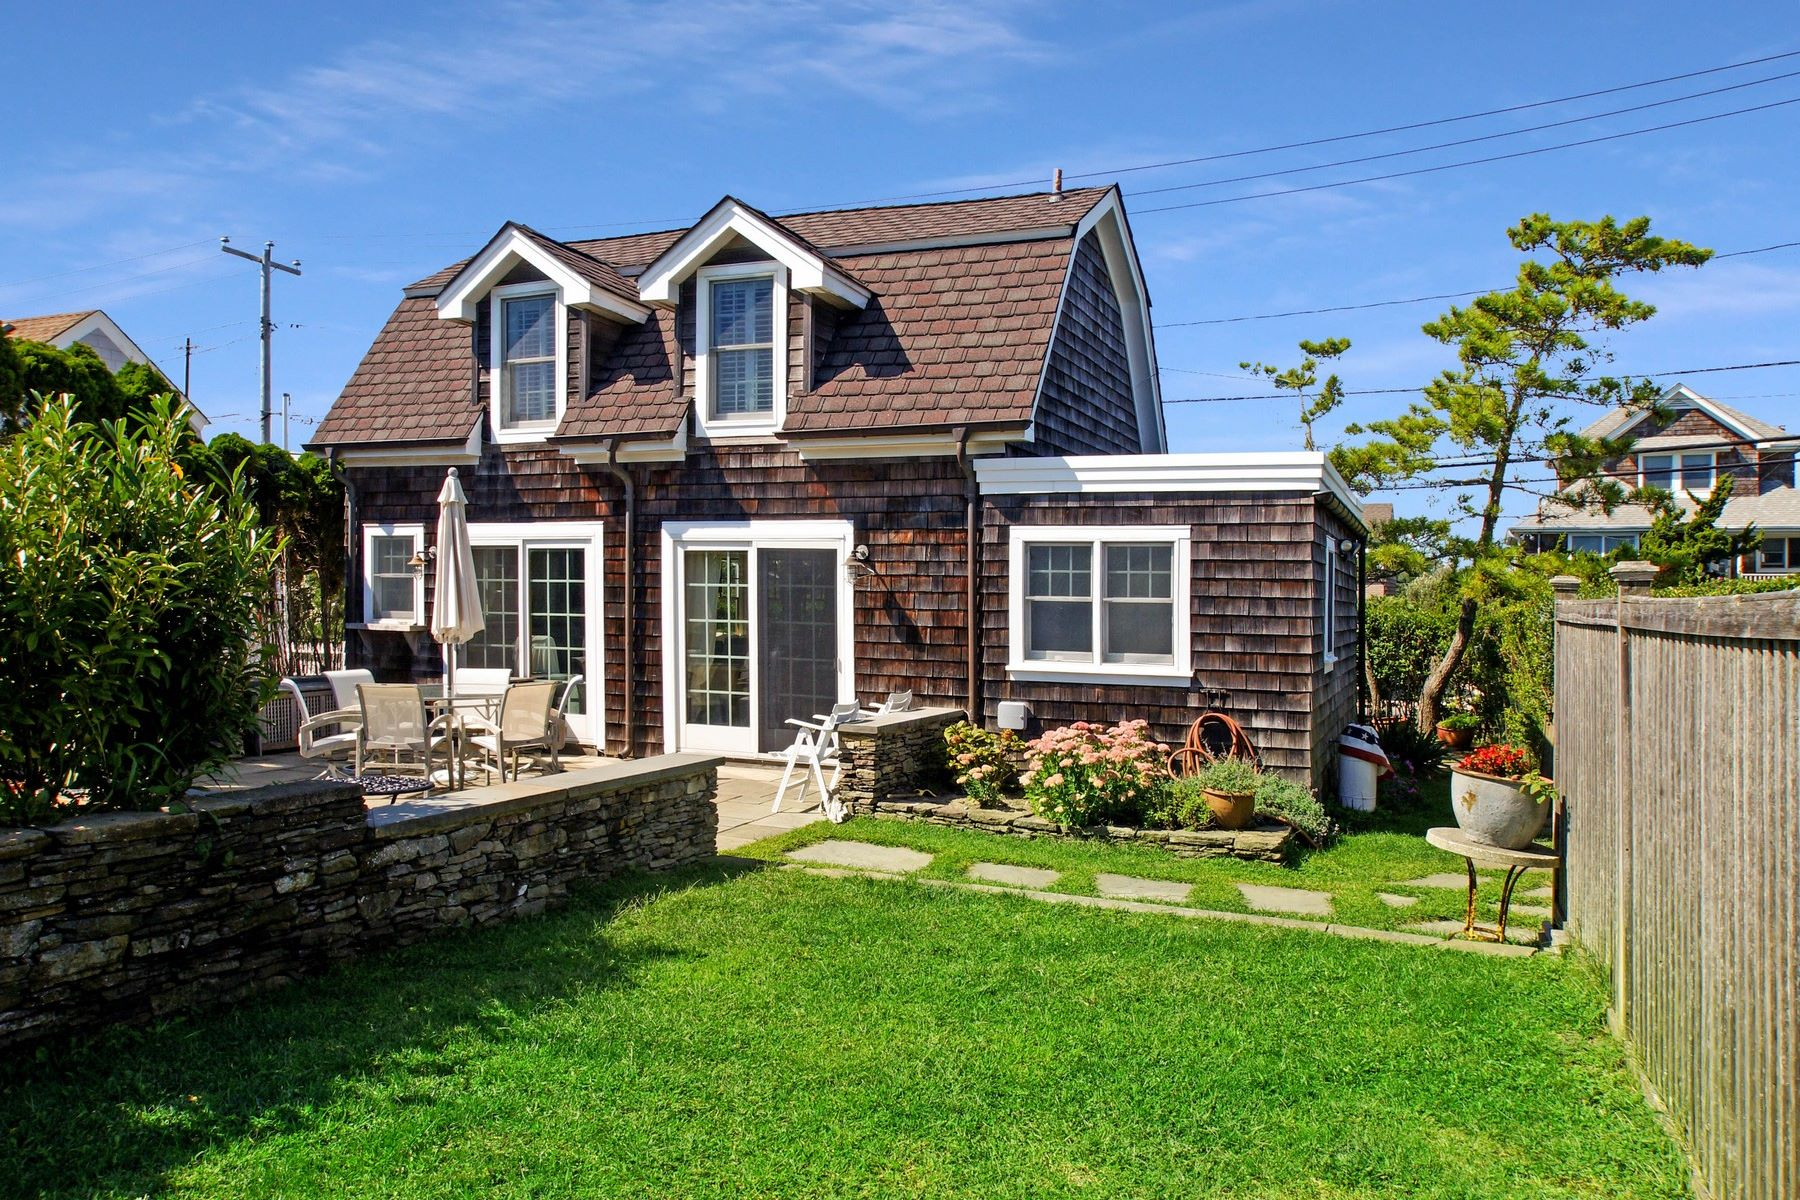 Single Family Homes for Sale at Quogue 74 Dune Road Quogue, New York 11959 United States